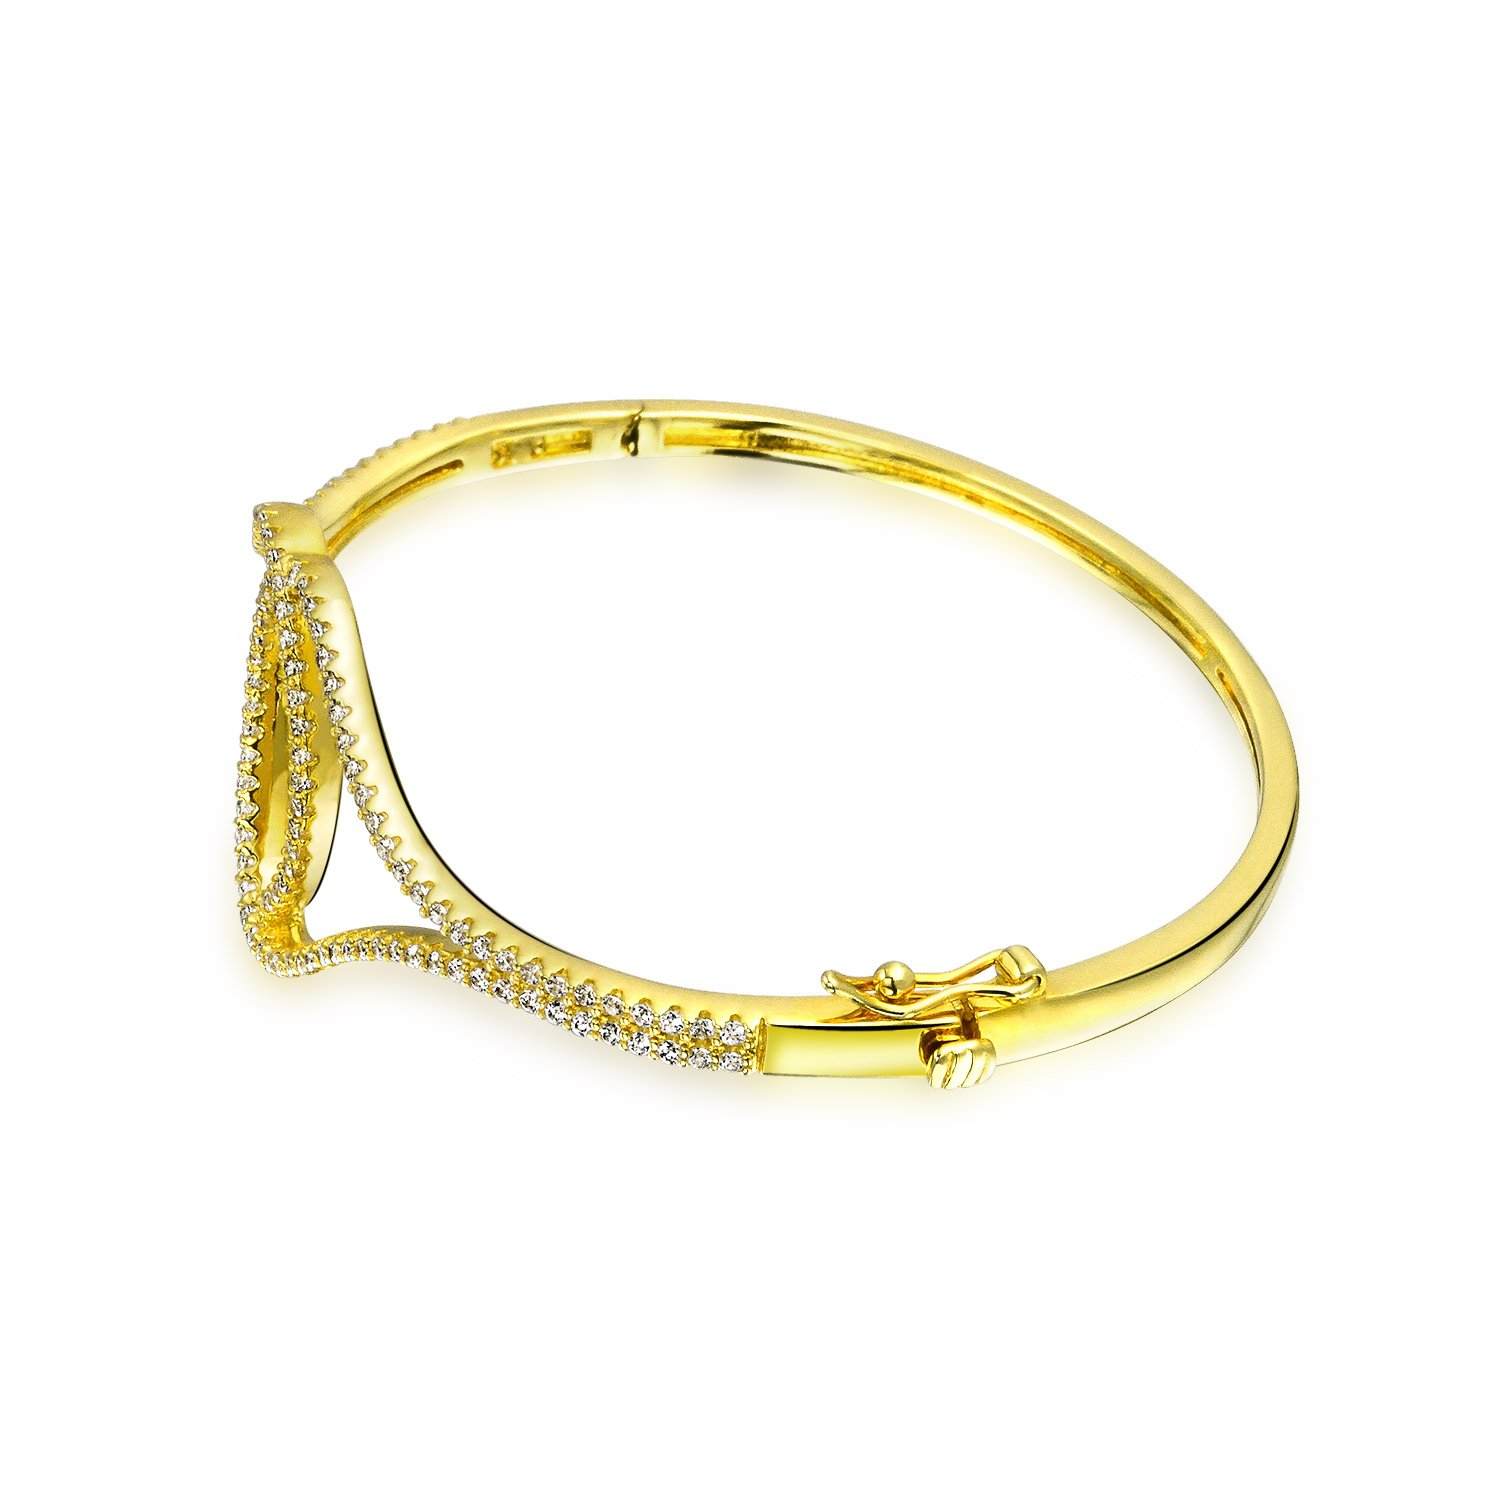 Interlocking Circles Cubic Zirconia CZ Accent Bangle Bracelet for Women 14K Gold Plated 925 Sterling Silver